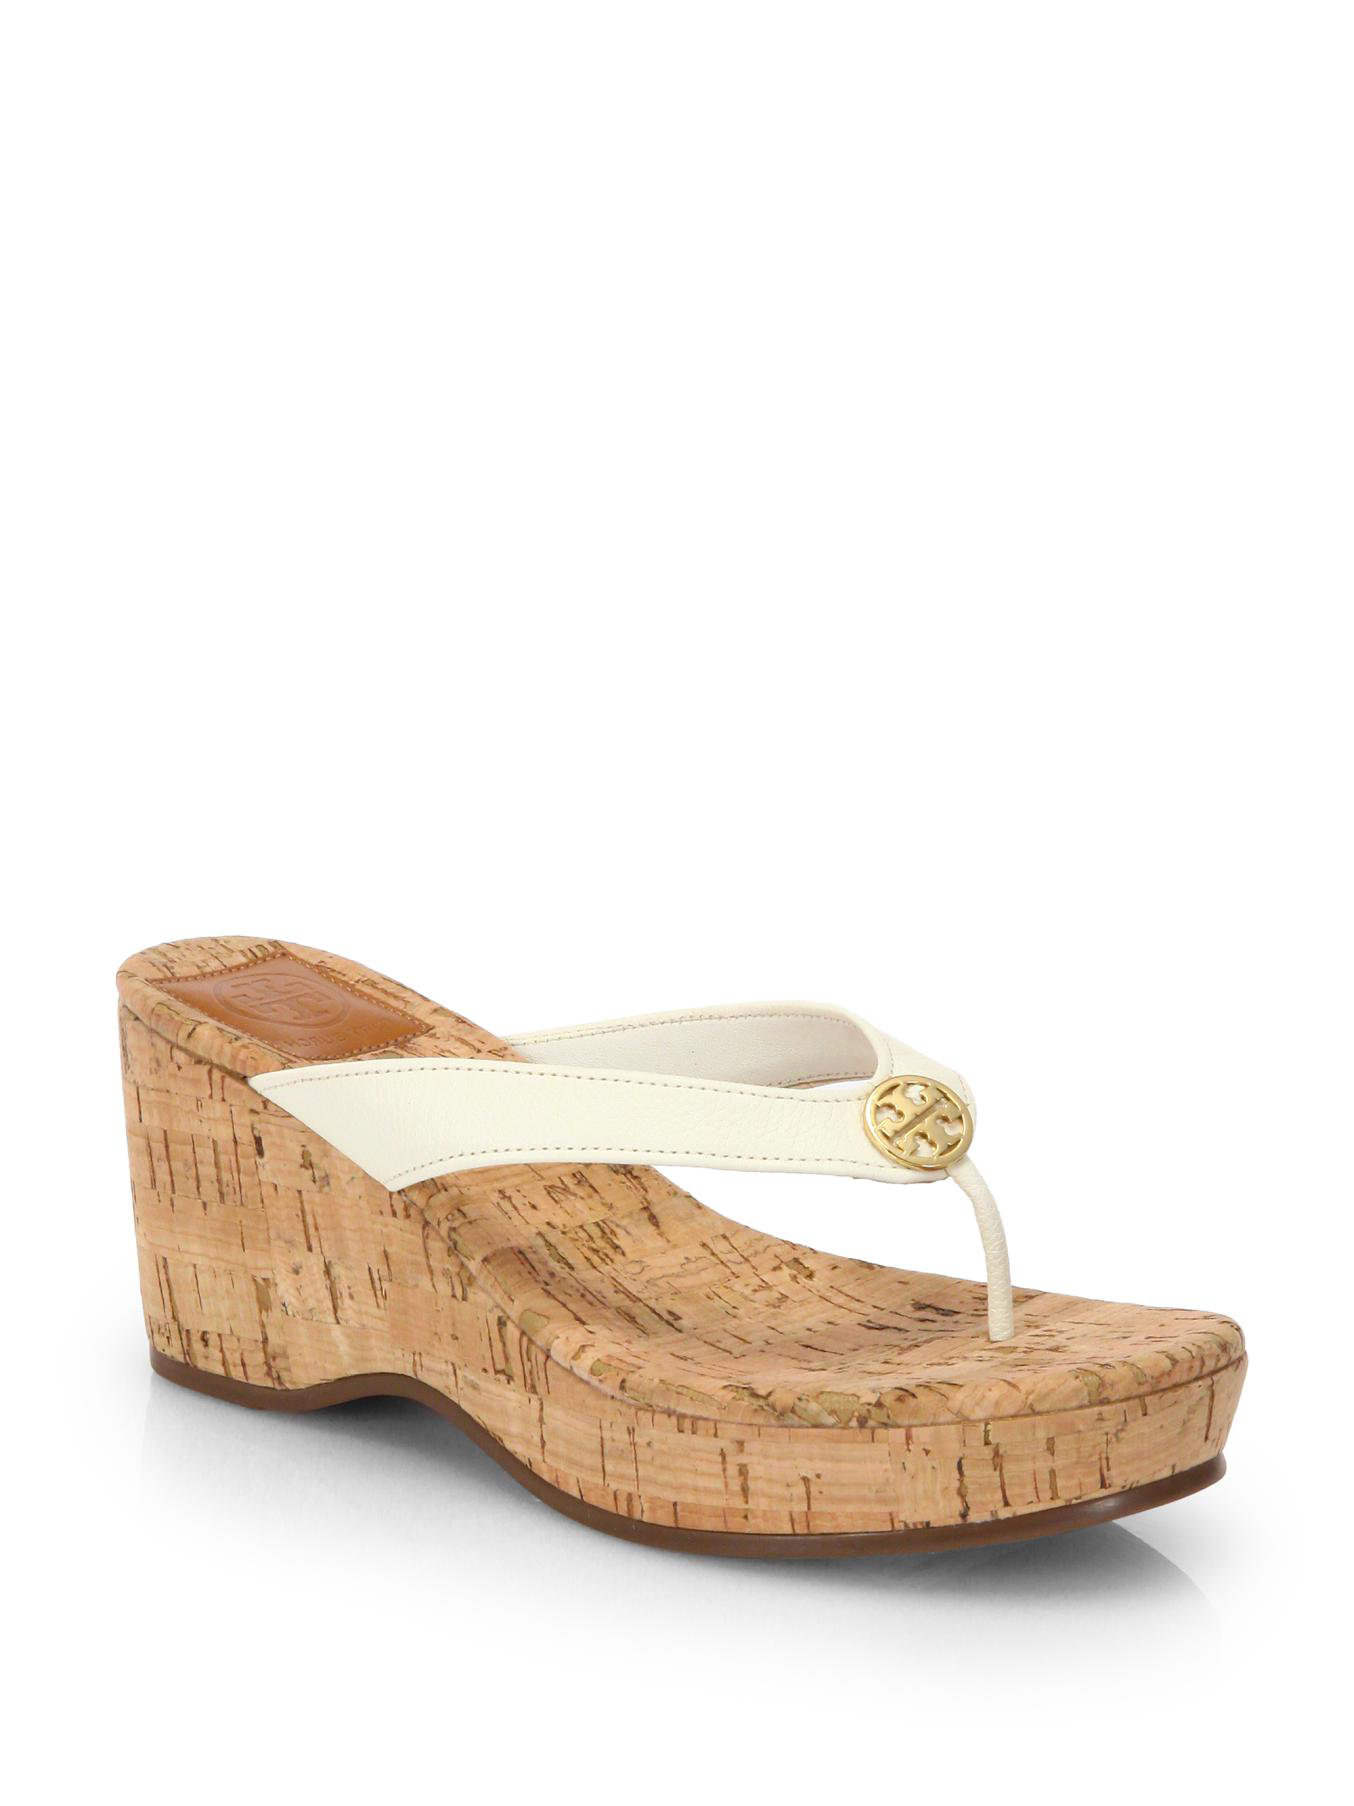 Tory Burch Suzy Leather Wedges discount factory outlet qSo90Q6I